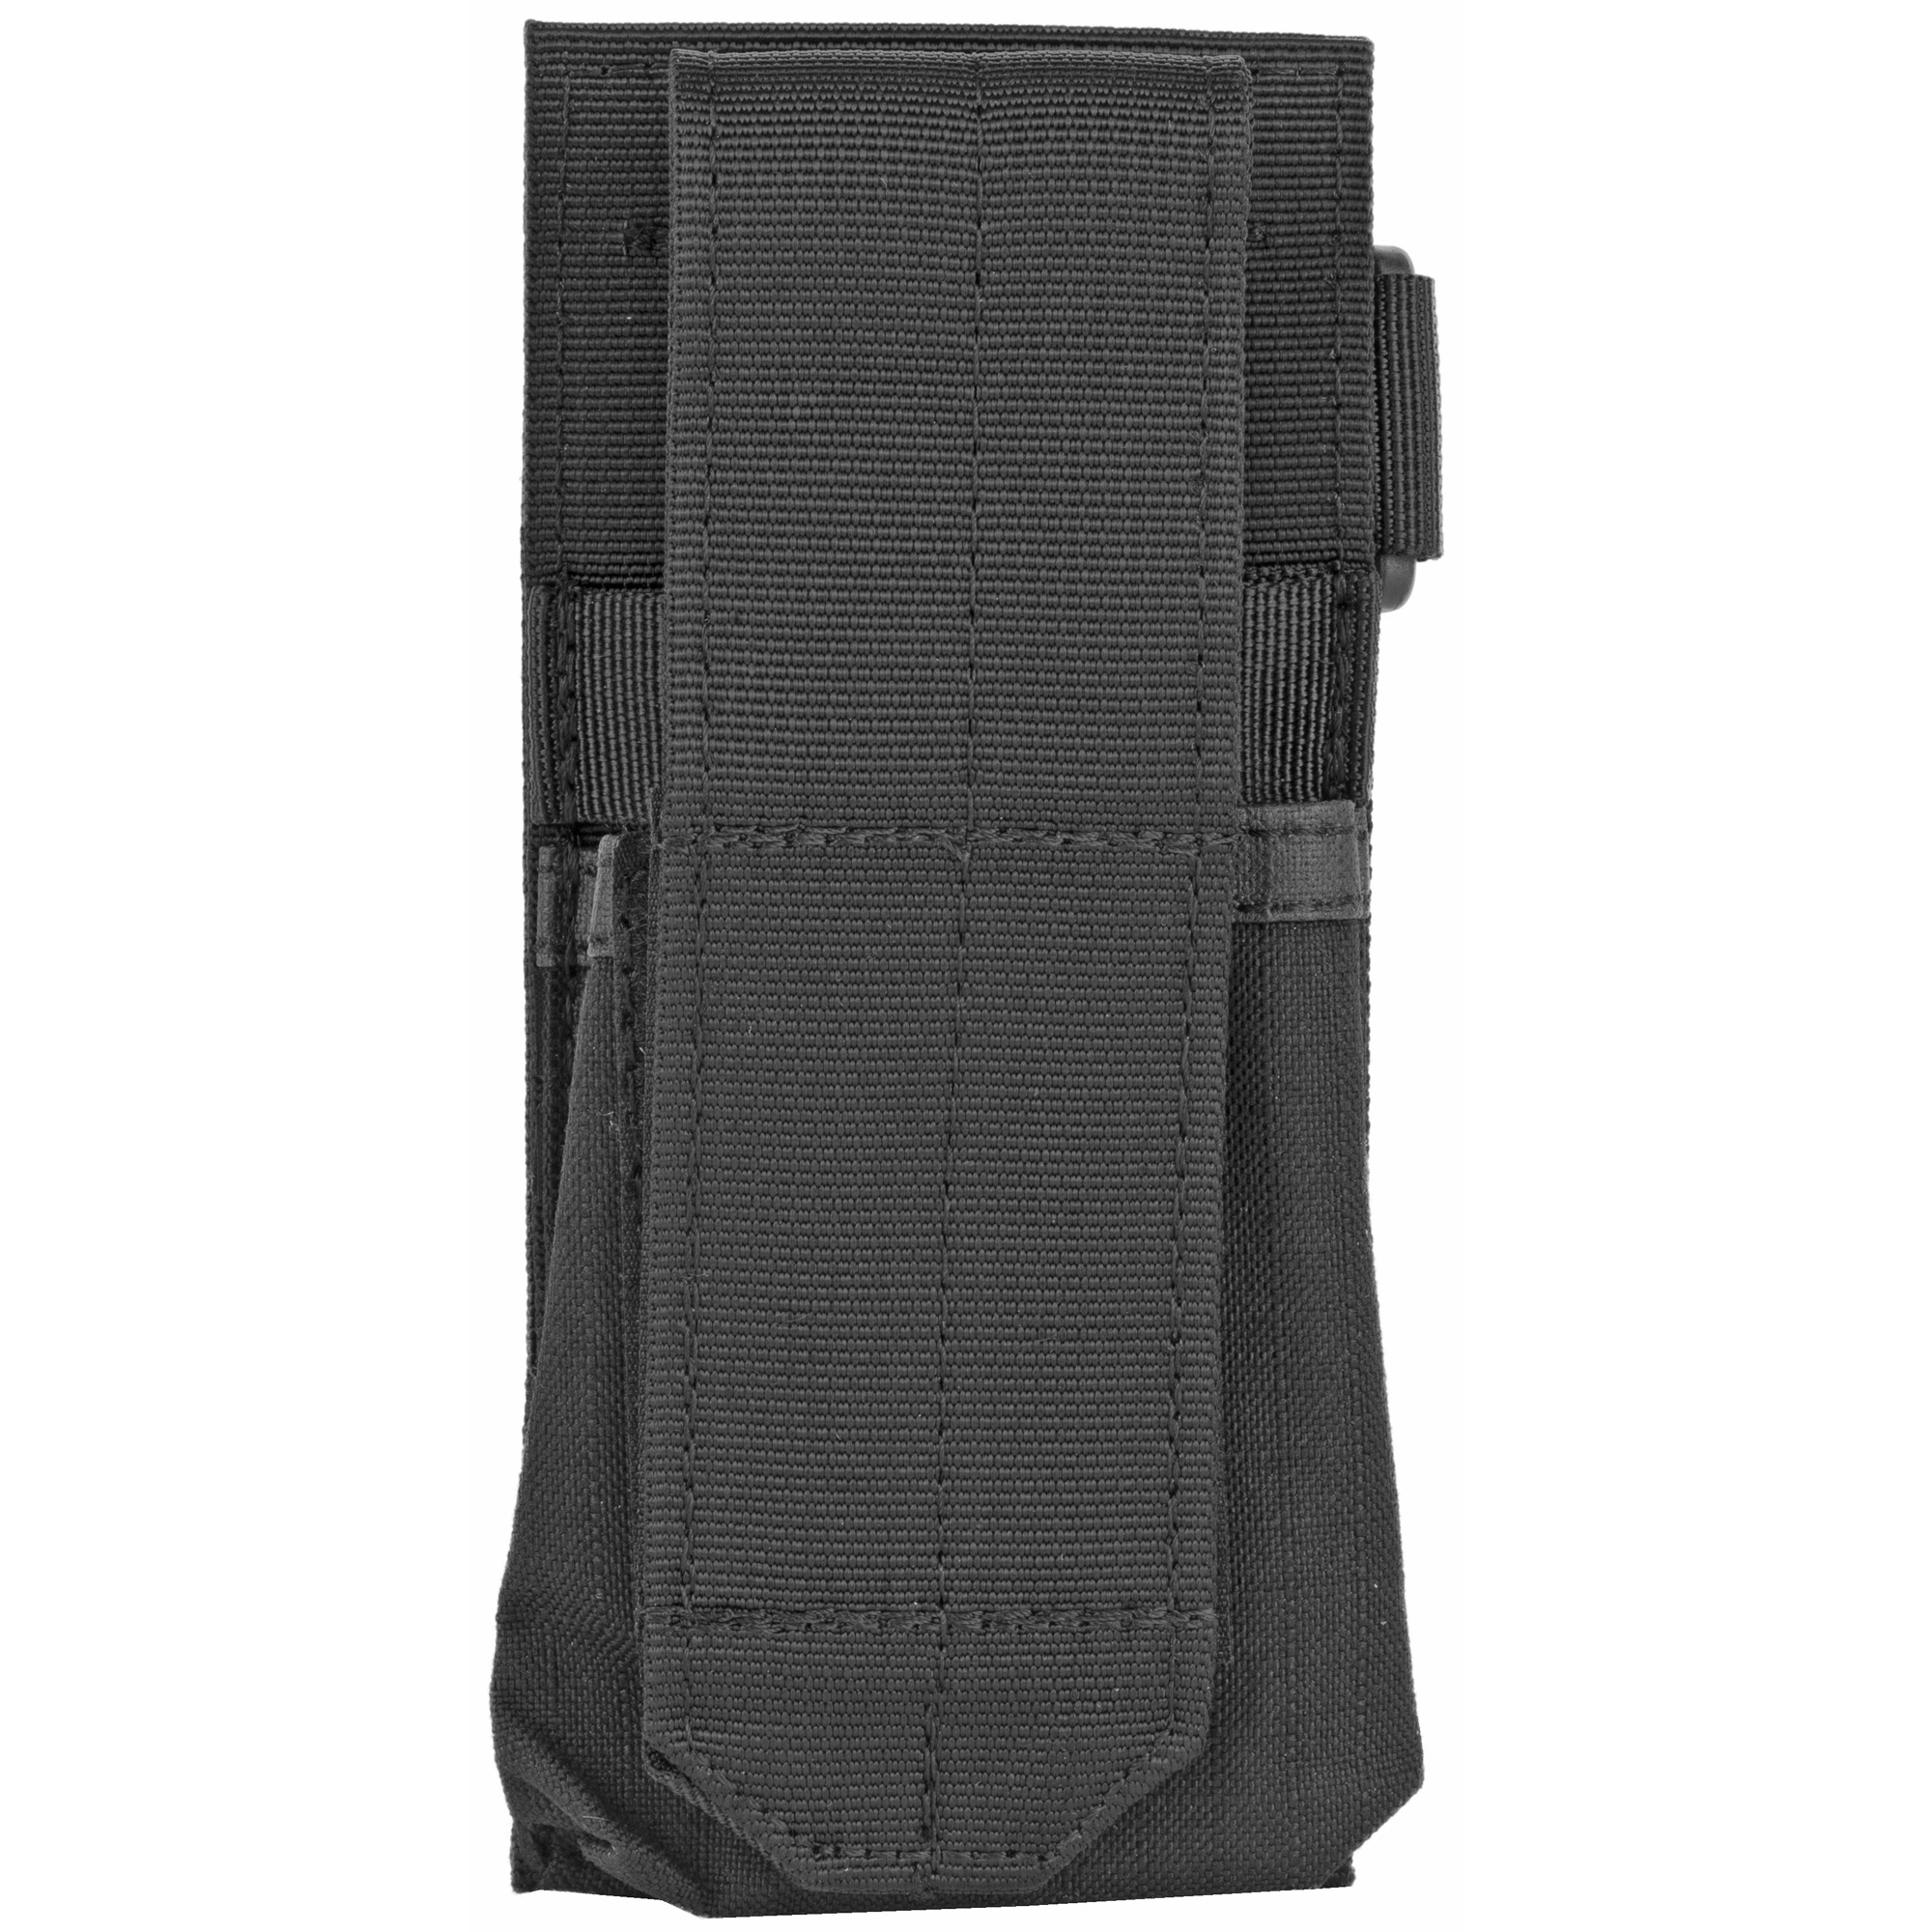 Bh Buttstk Mag Pch M4 Collapsible Bk